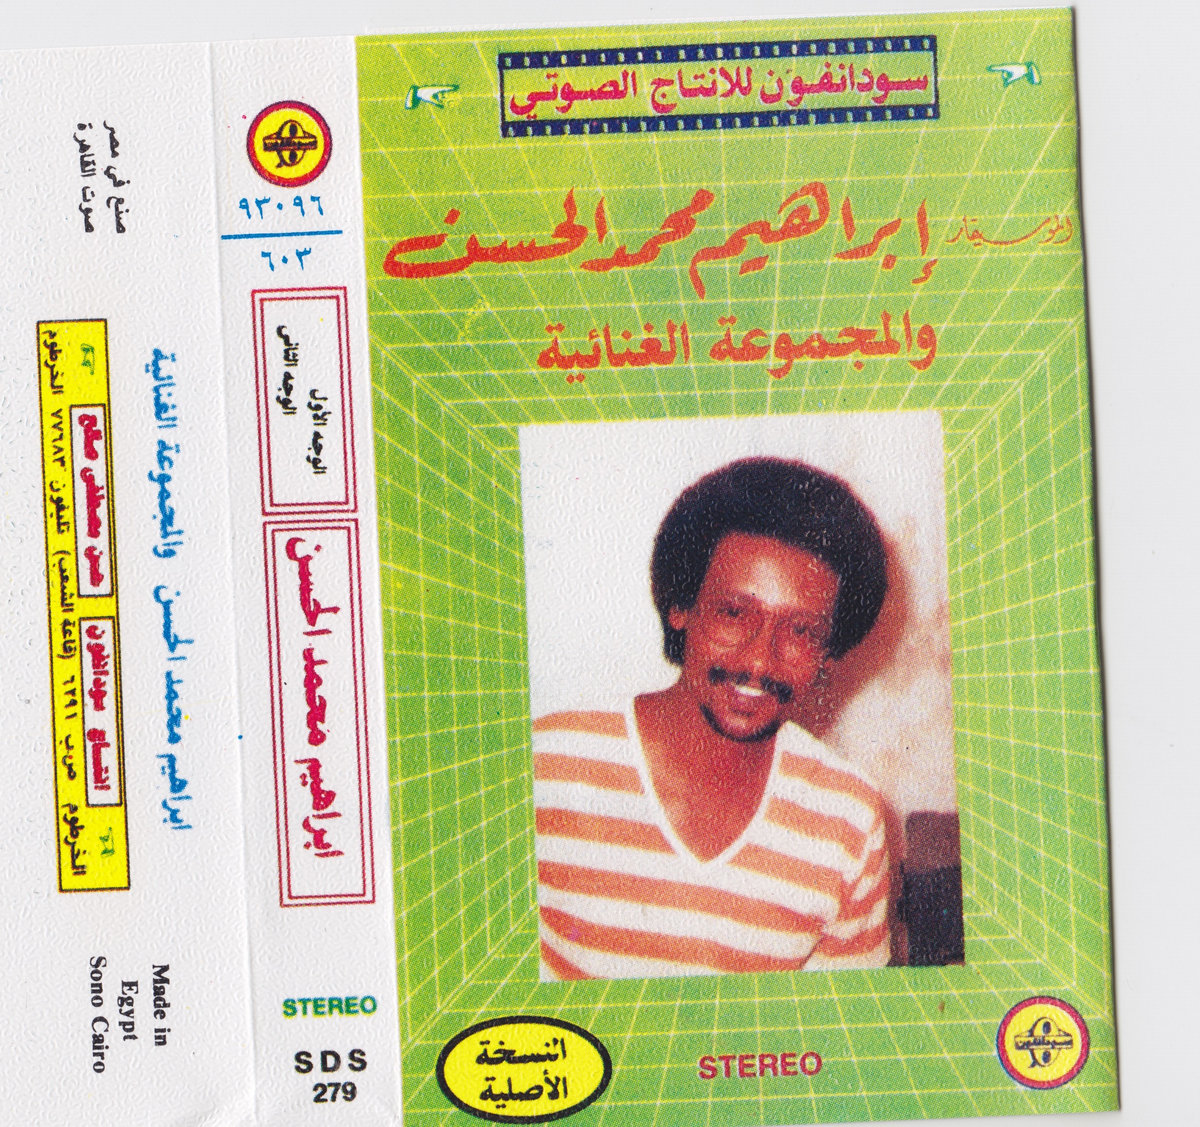 Download free old arabic music mp3